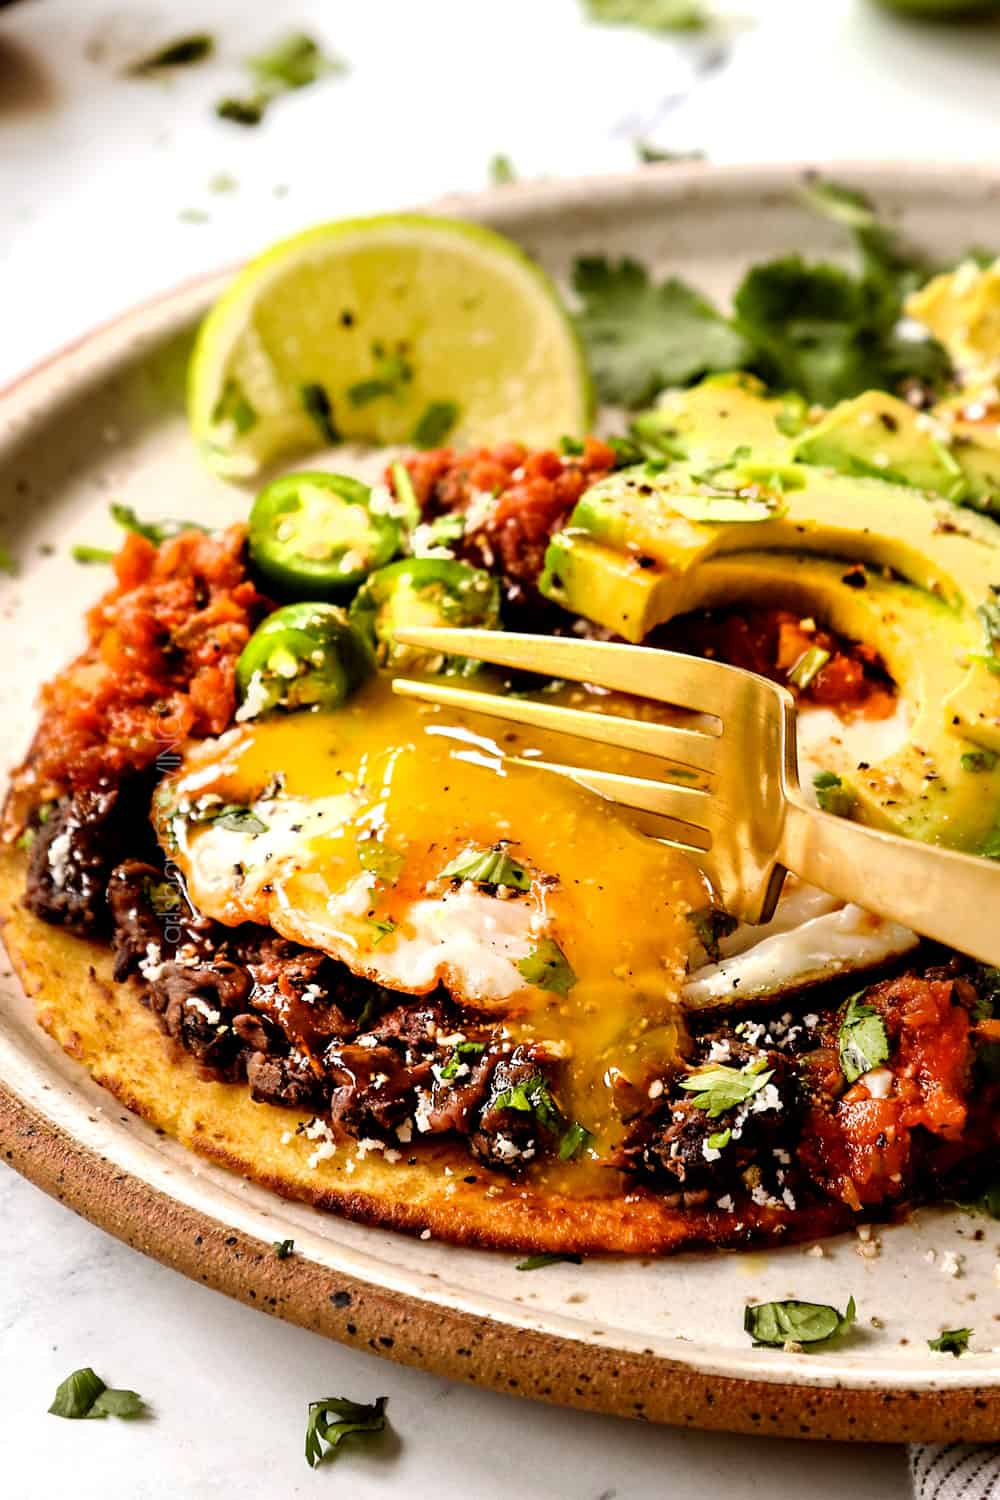 showing how to eat Huevos Rancheros by cutting the egg yolk so it runs into the salsa creating a sauce